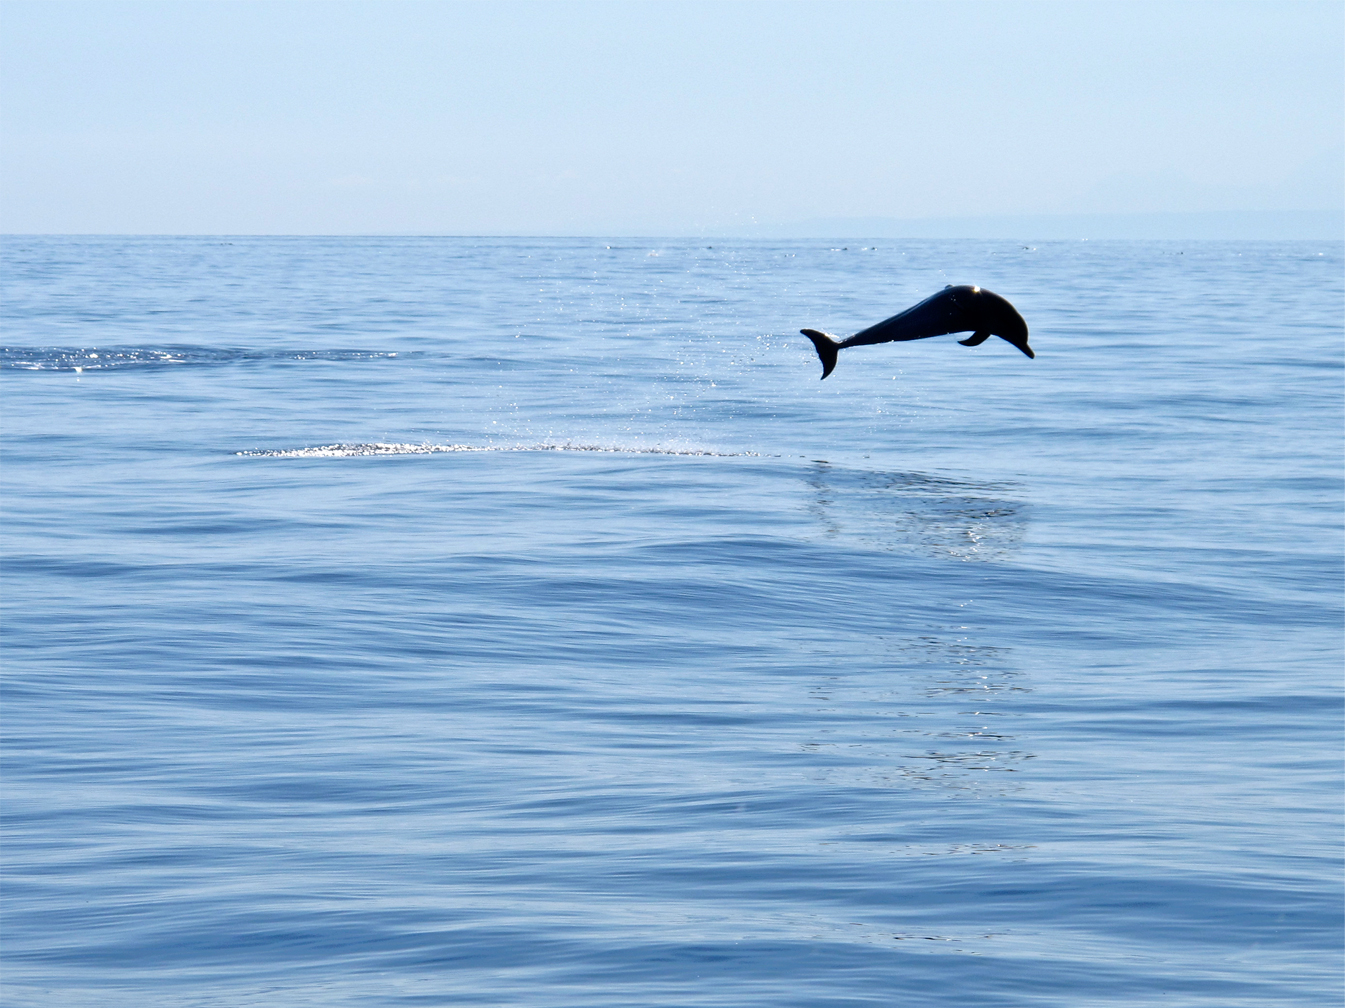 A dolphin leaps through the waters off Atauro Island, Timor-Leste. The deep oceanic waters off Timor-Leste, along the Wetar and Ombai Strait, are a major migratory route between the Pacific and Indian Ocean for marine wildlife.